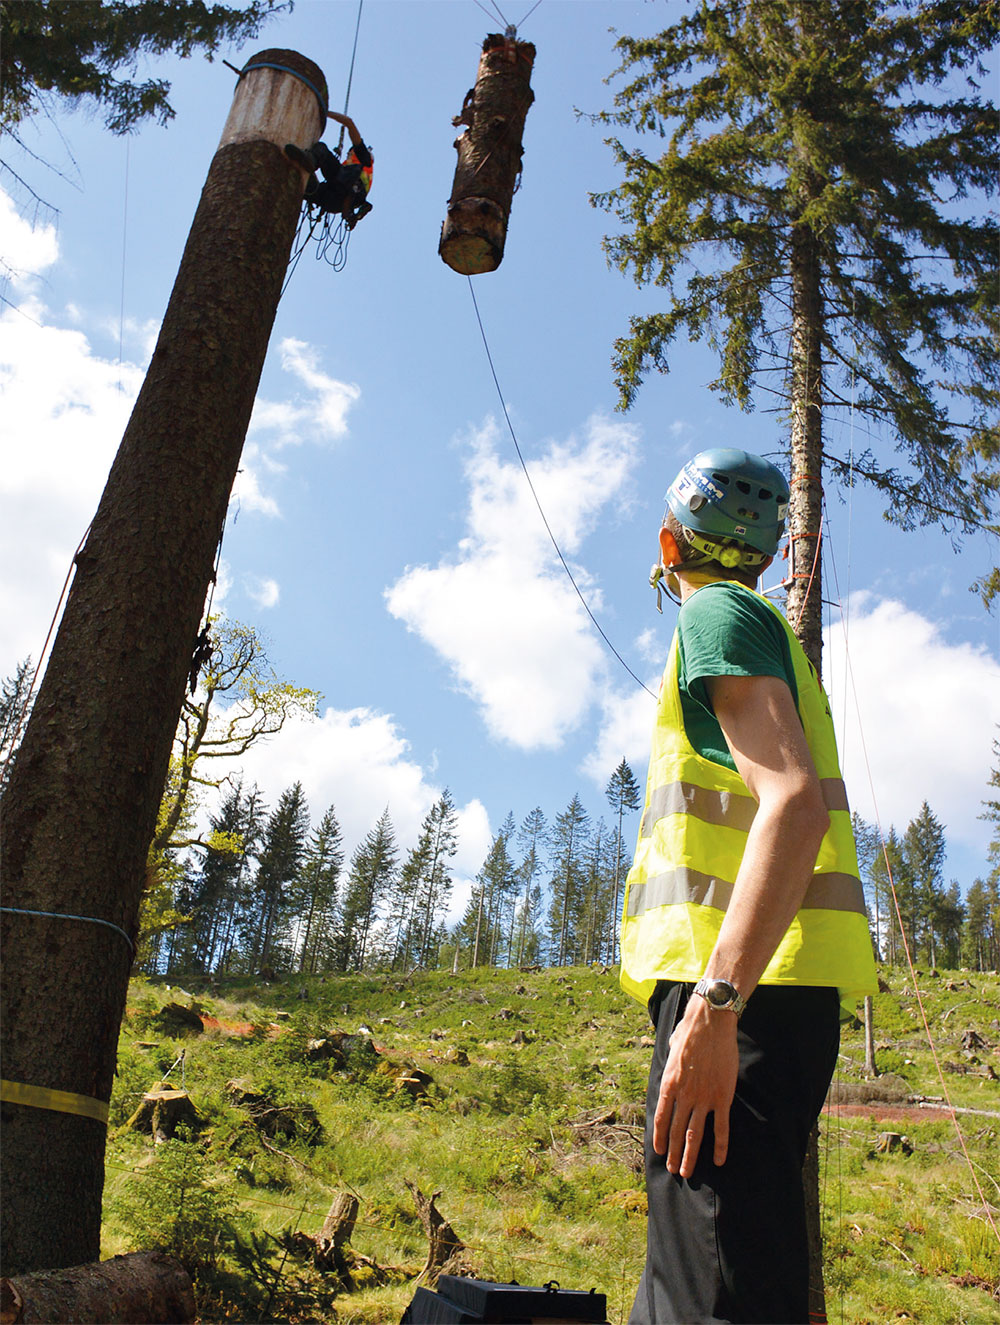 Lifting and resetting the test mass. The climber and mass were anchored with two fully independent systems. (Photo: Treemagineers Ltd)